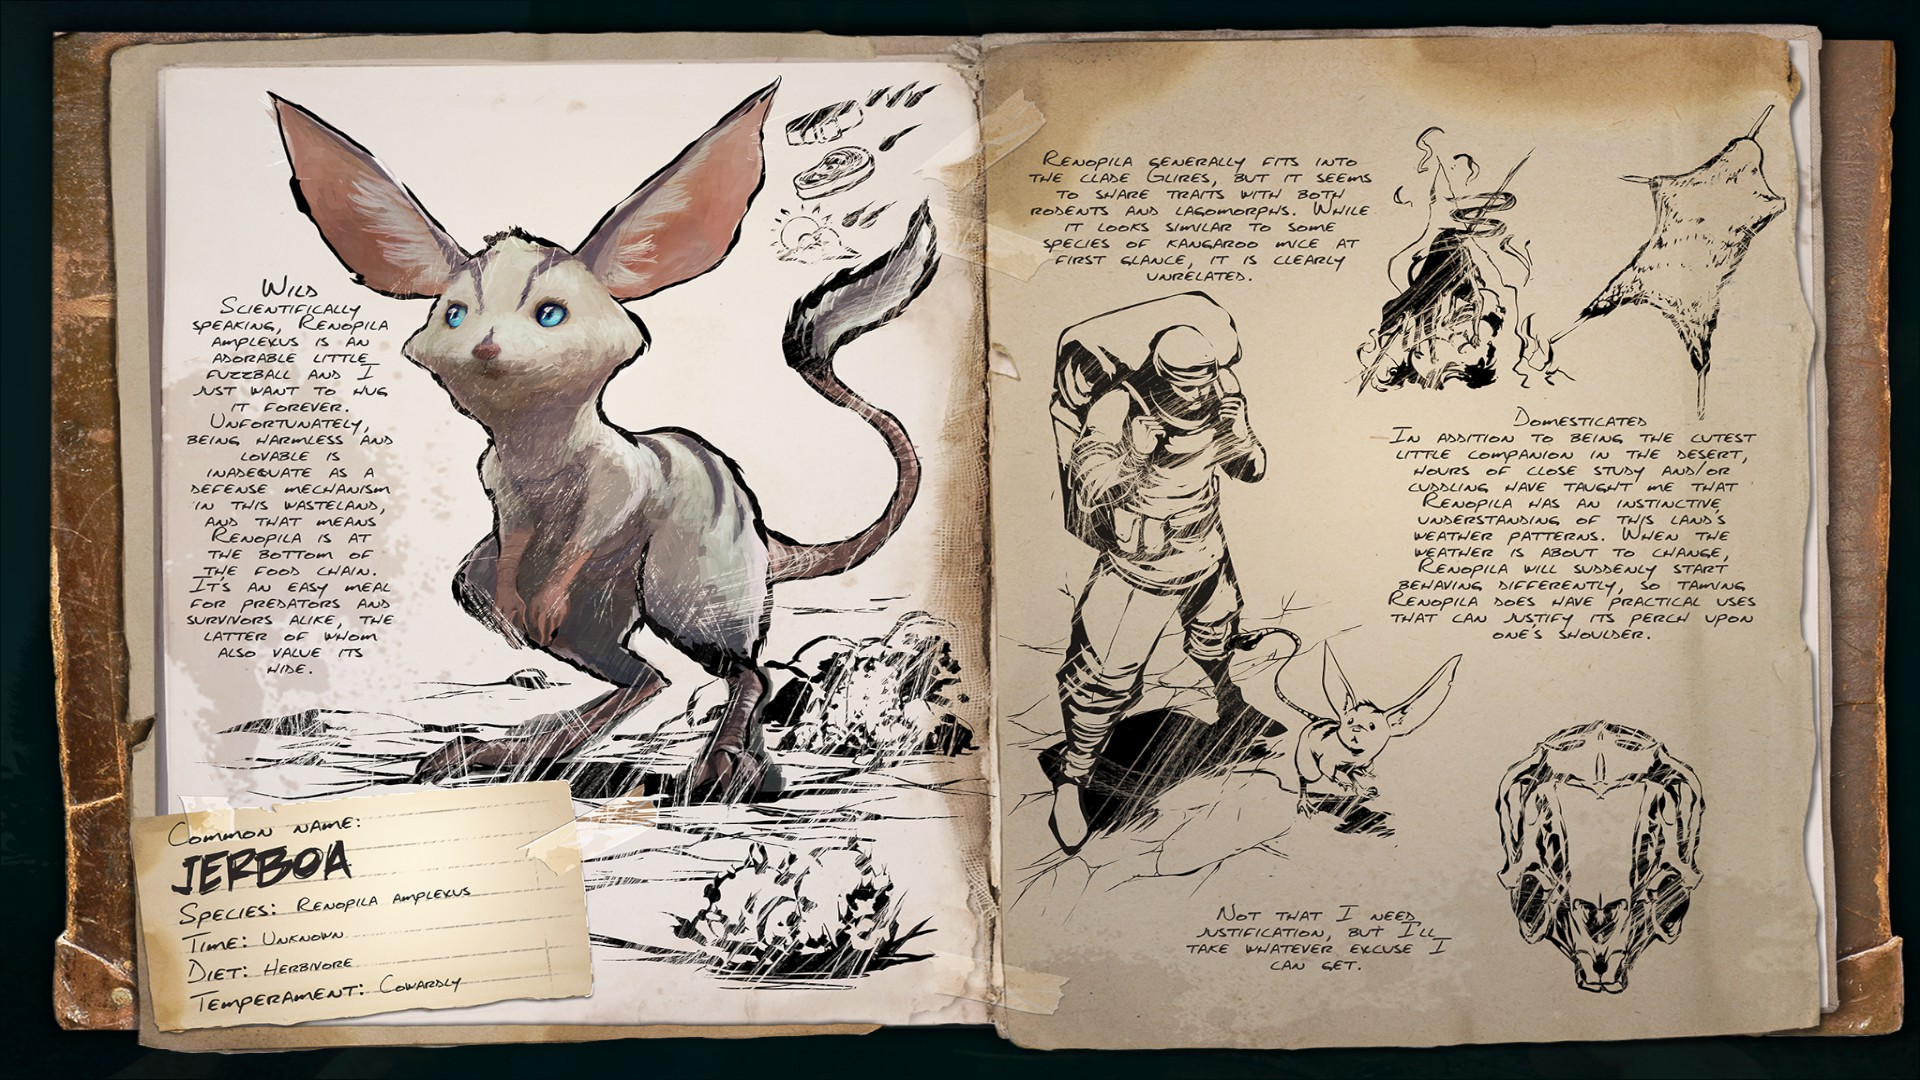 Dino Dossier: Jerboa (Scorched Earth)